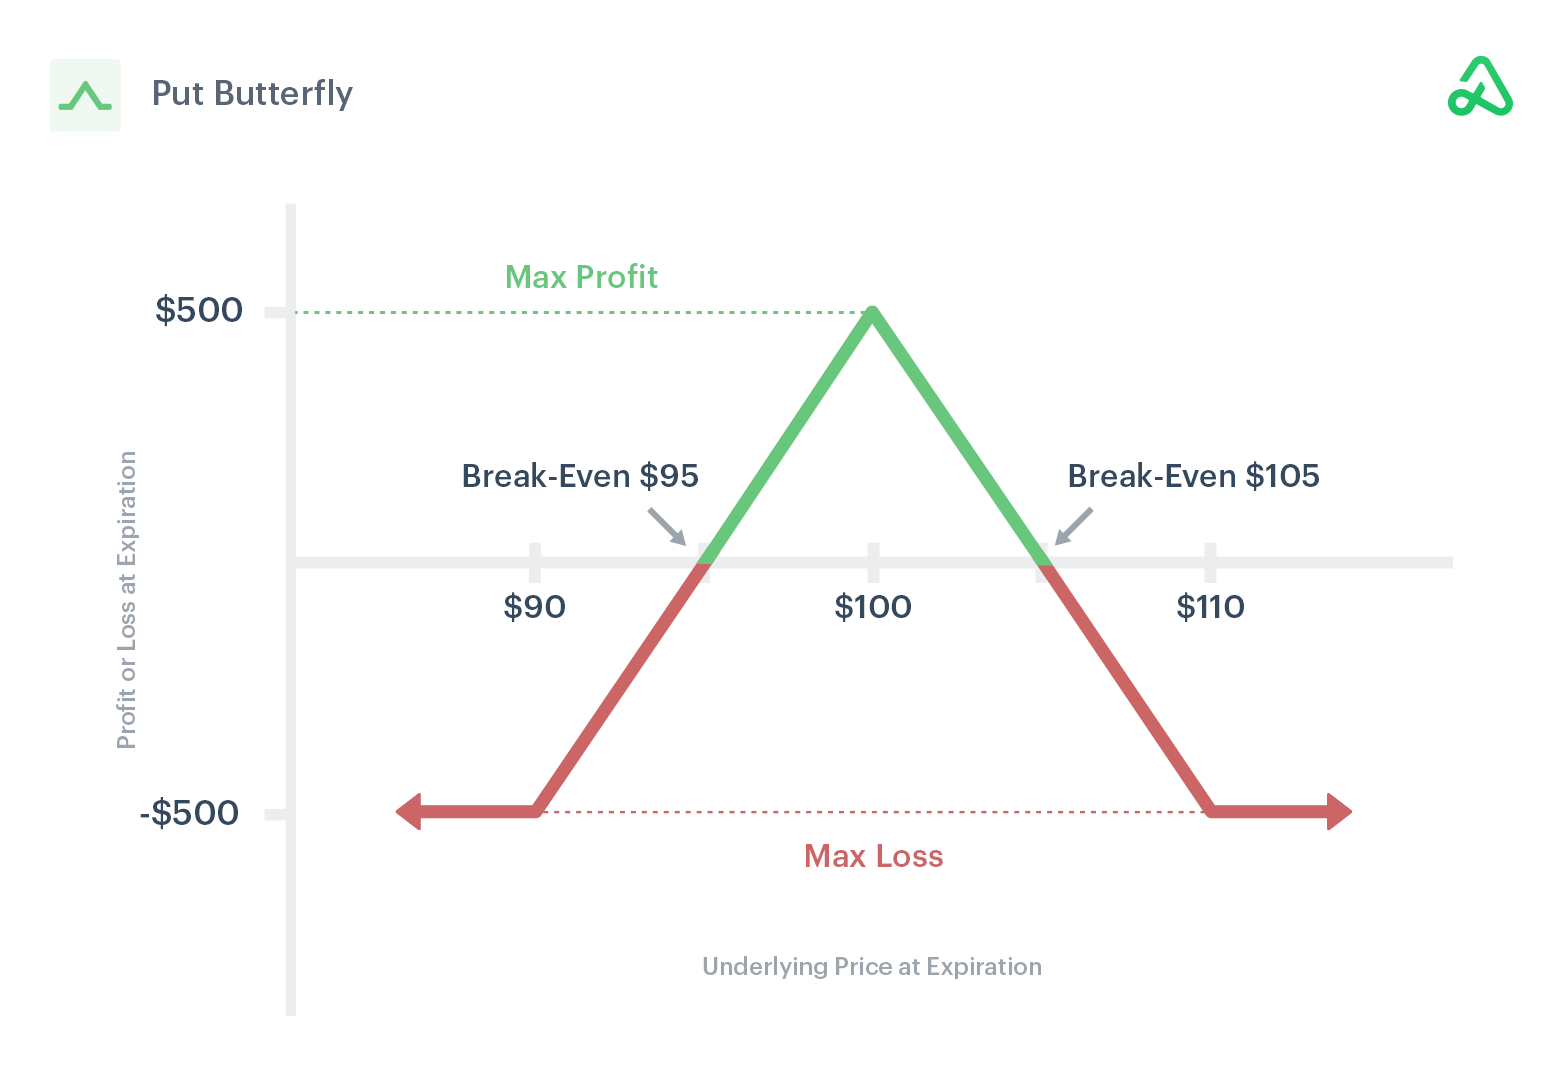 Image of put butterfly payoff diagram showing max profit, max loss, and break-even points